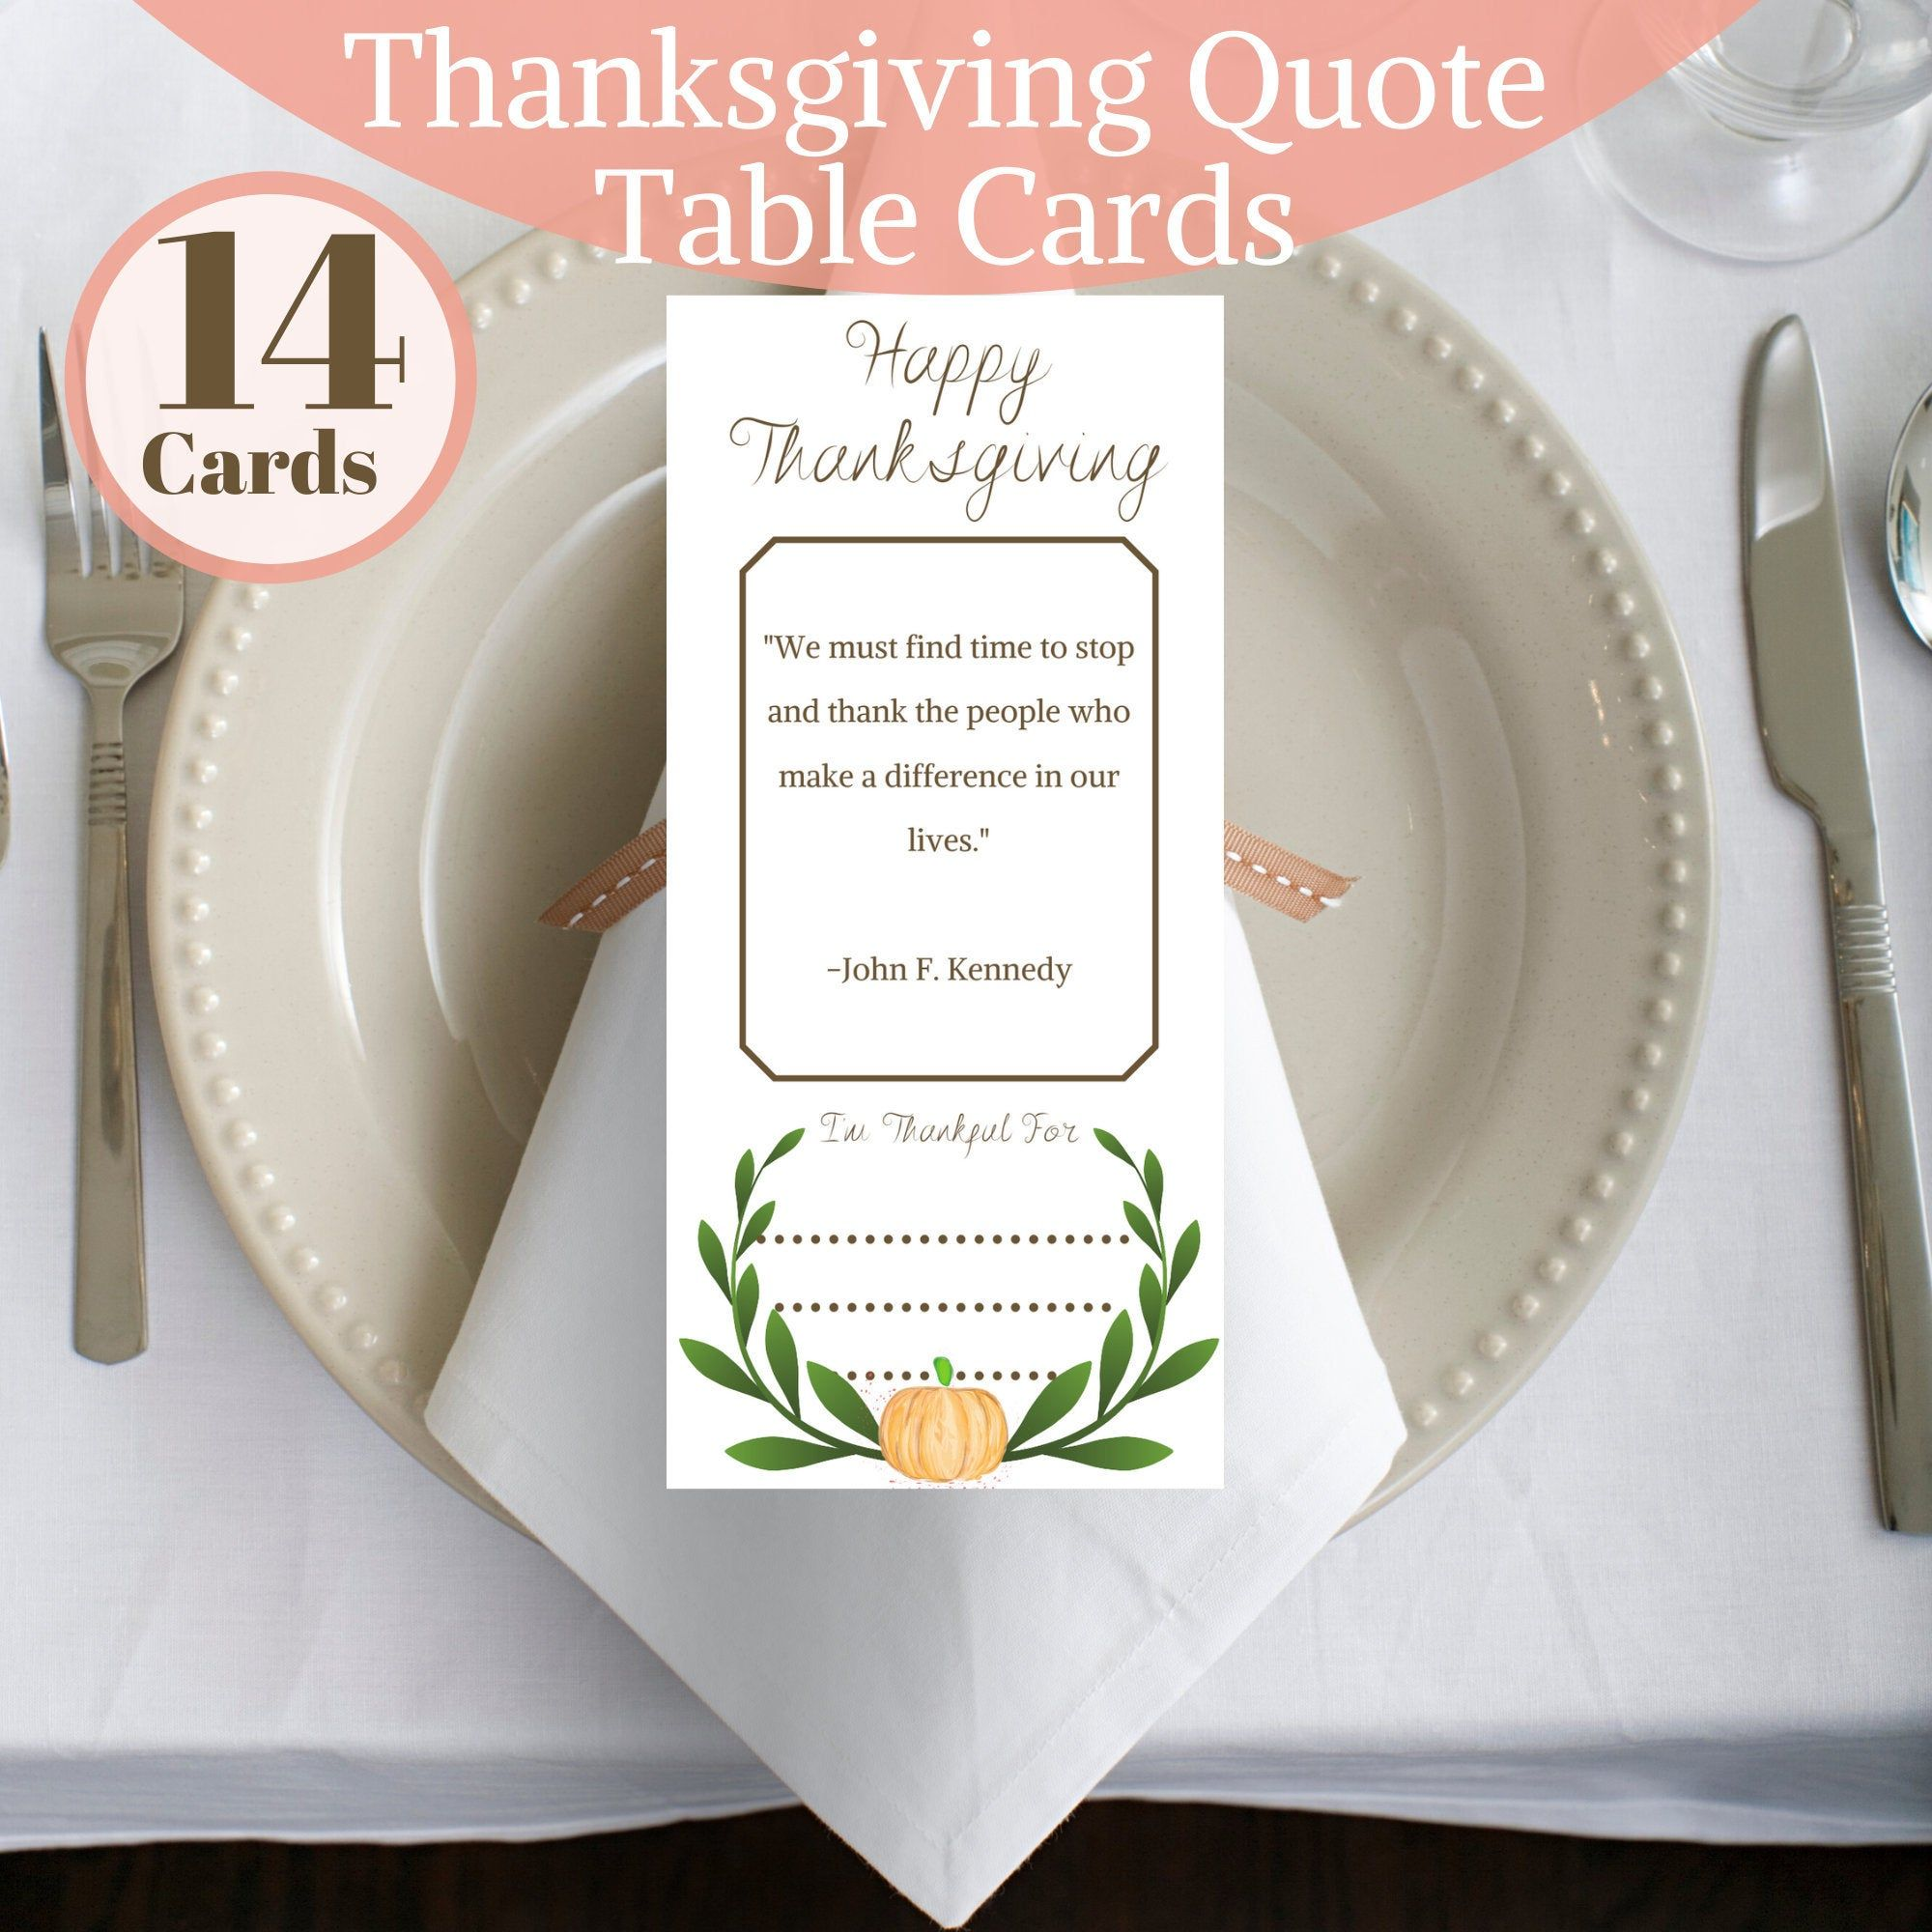 Thanksgiving Table Card Printable,Thanksgiving Dinner Place Card Template,Thanksgiving Decor,Place Setting Cards,Table Setting